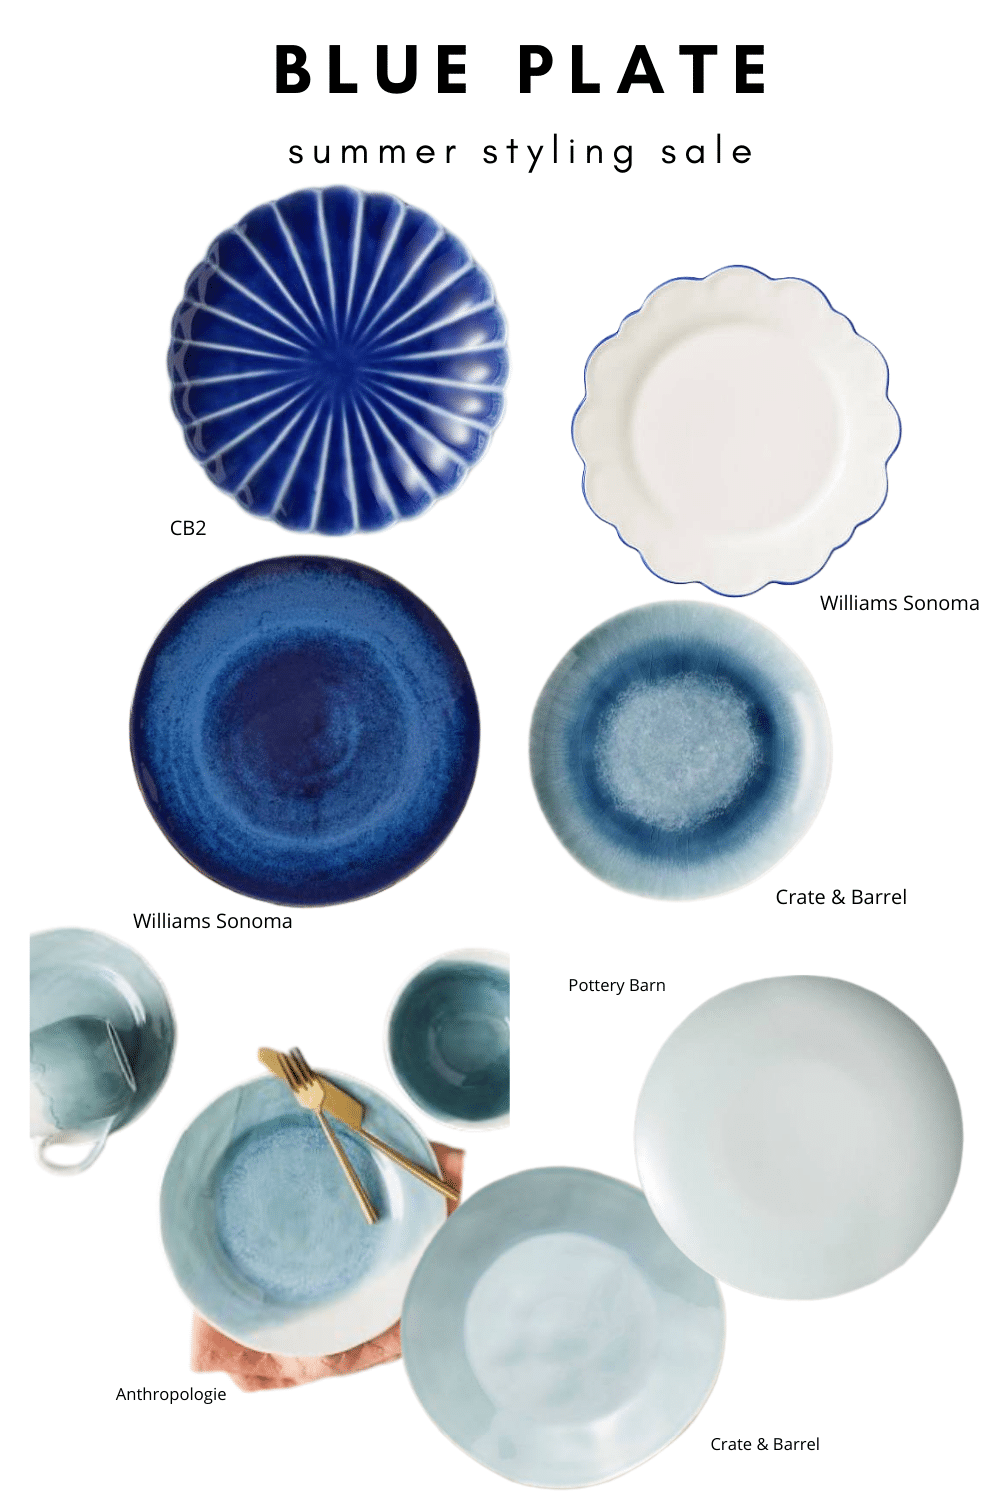 Grab these blue plates on SALE for your summer table styling.